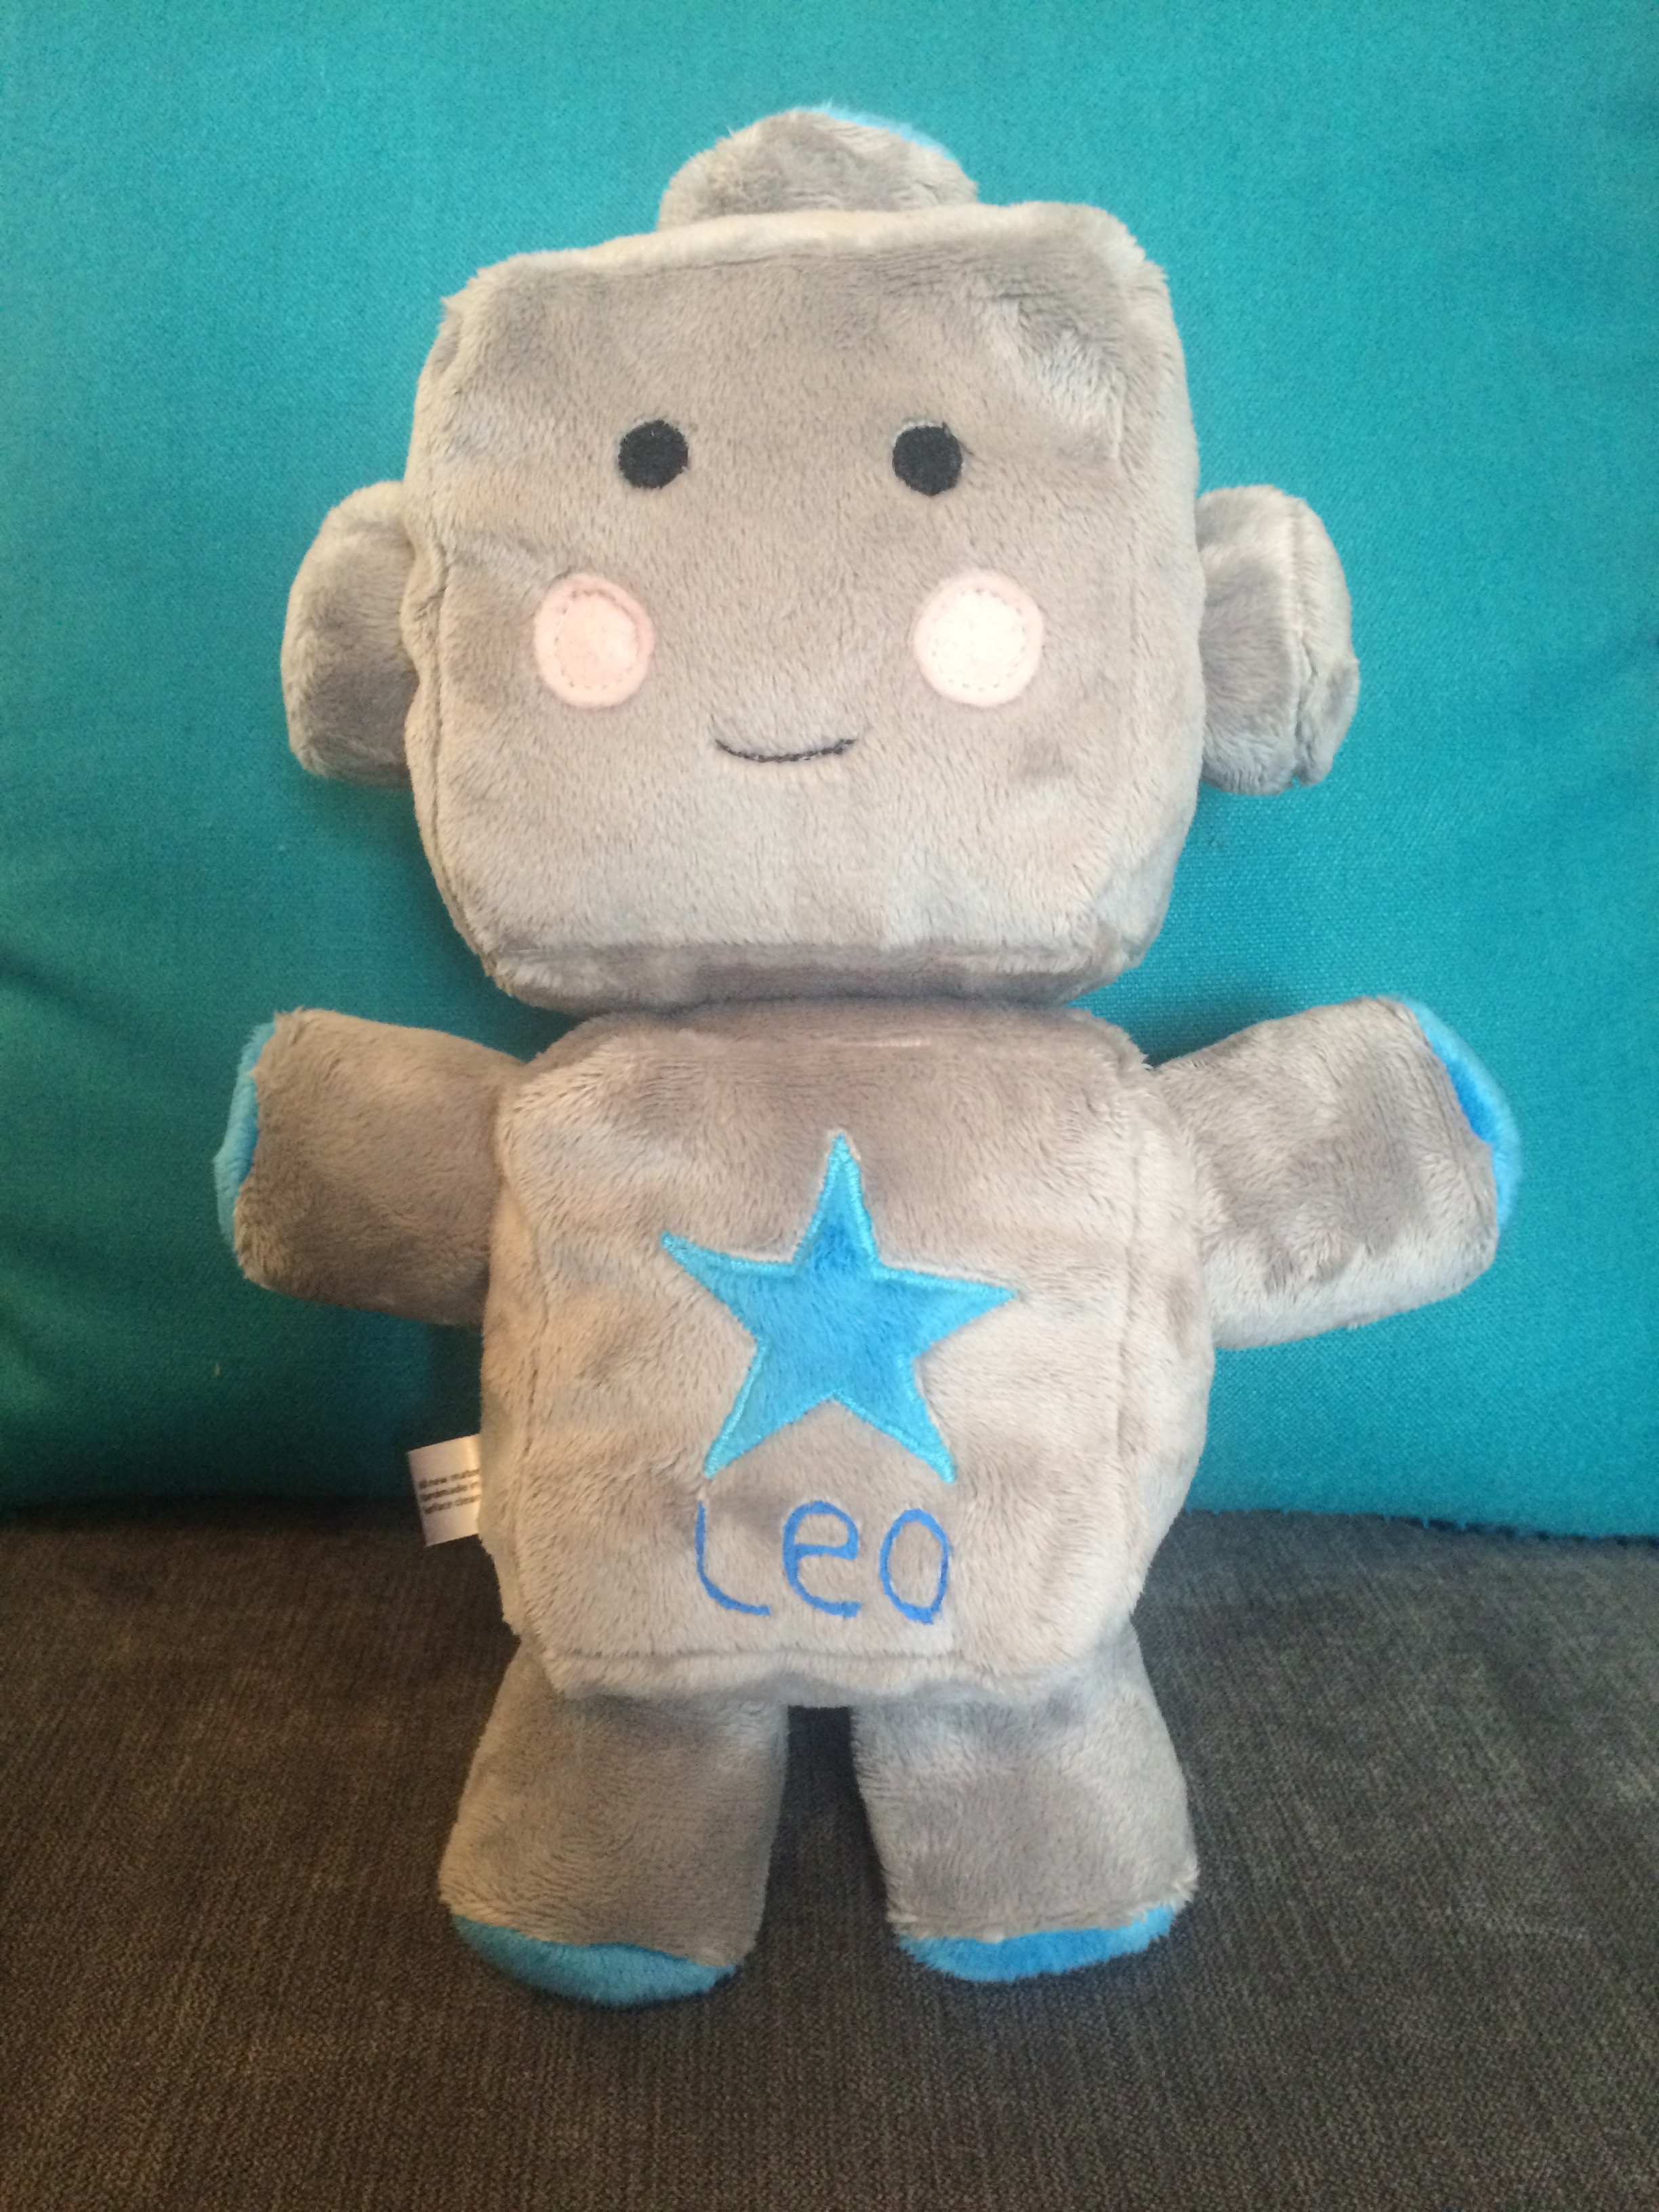 Robot plush toy – Leo